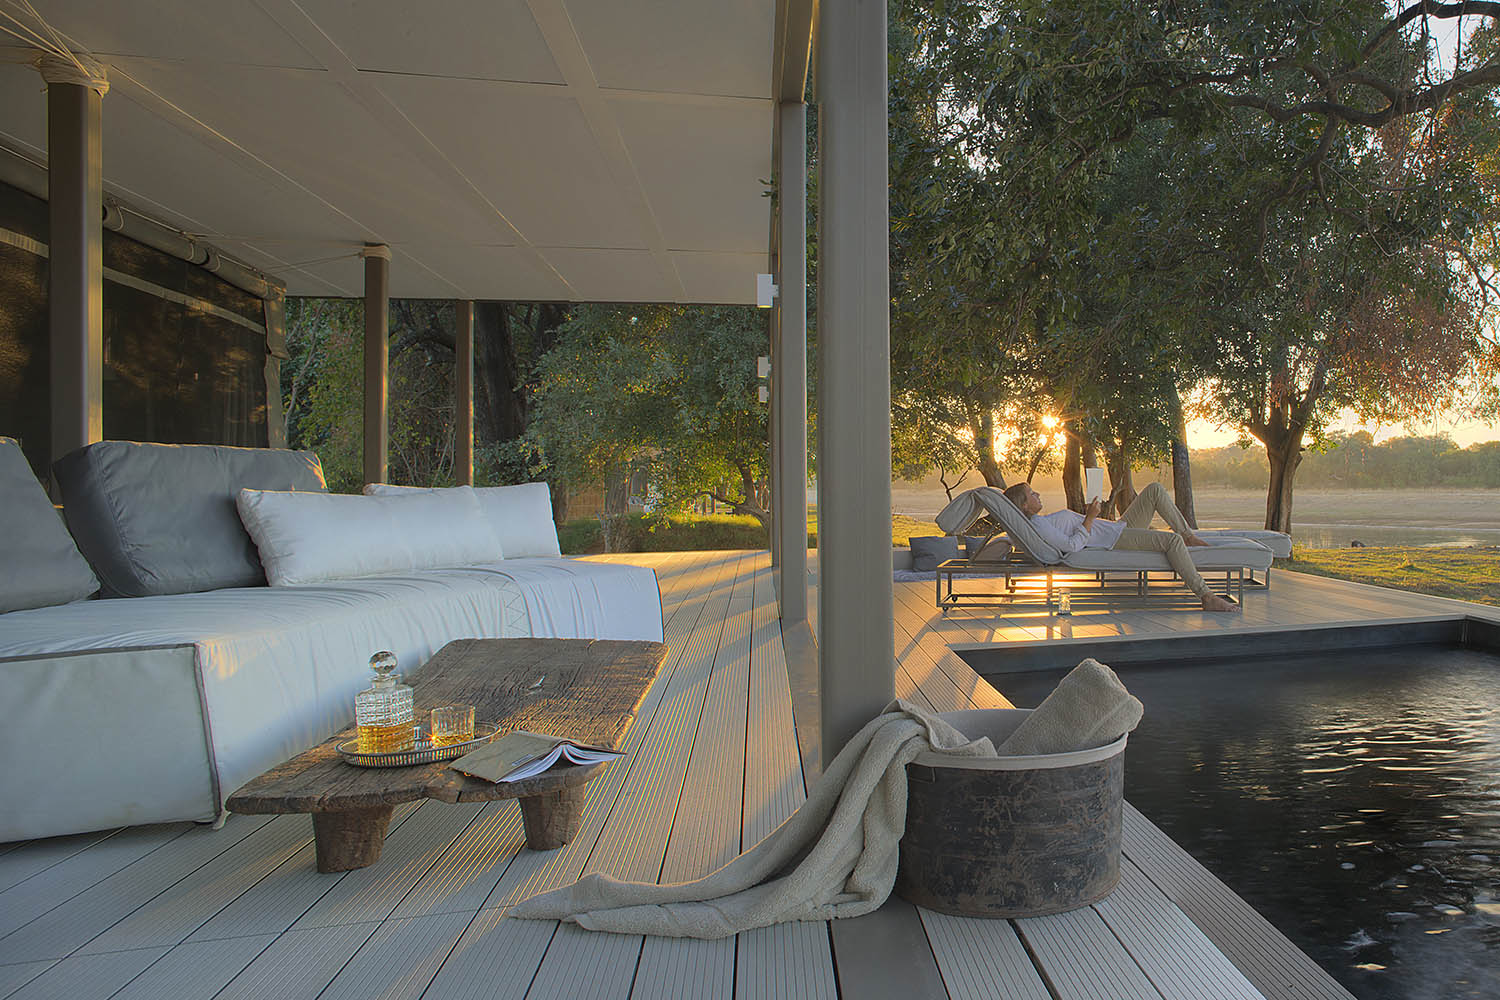 chinzombo-glamourous-lodge-zambia-in-style-tours-safari-packages-lodges-exploring-south-luangwa-national-park-lounge-area-deck